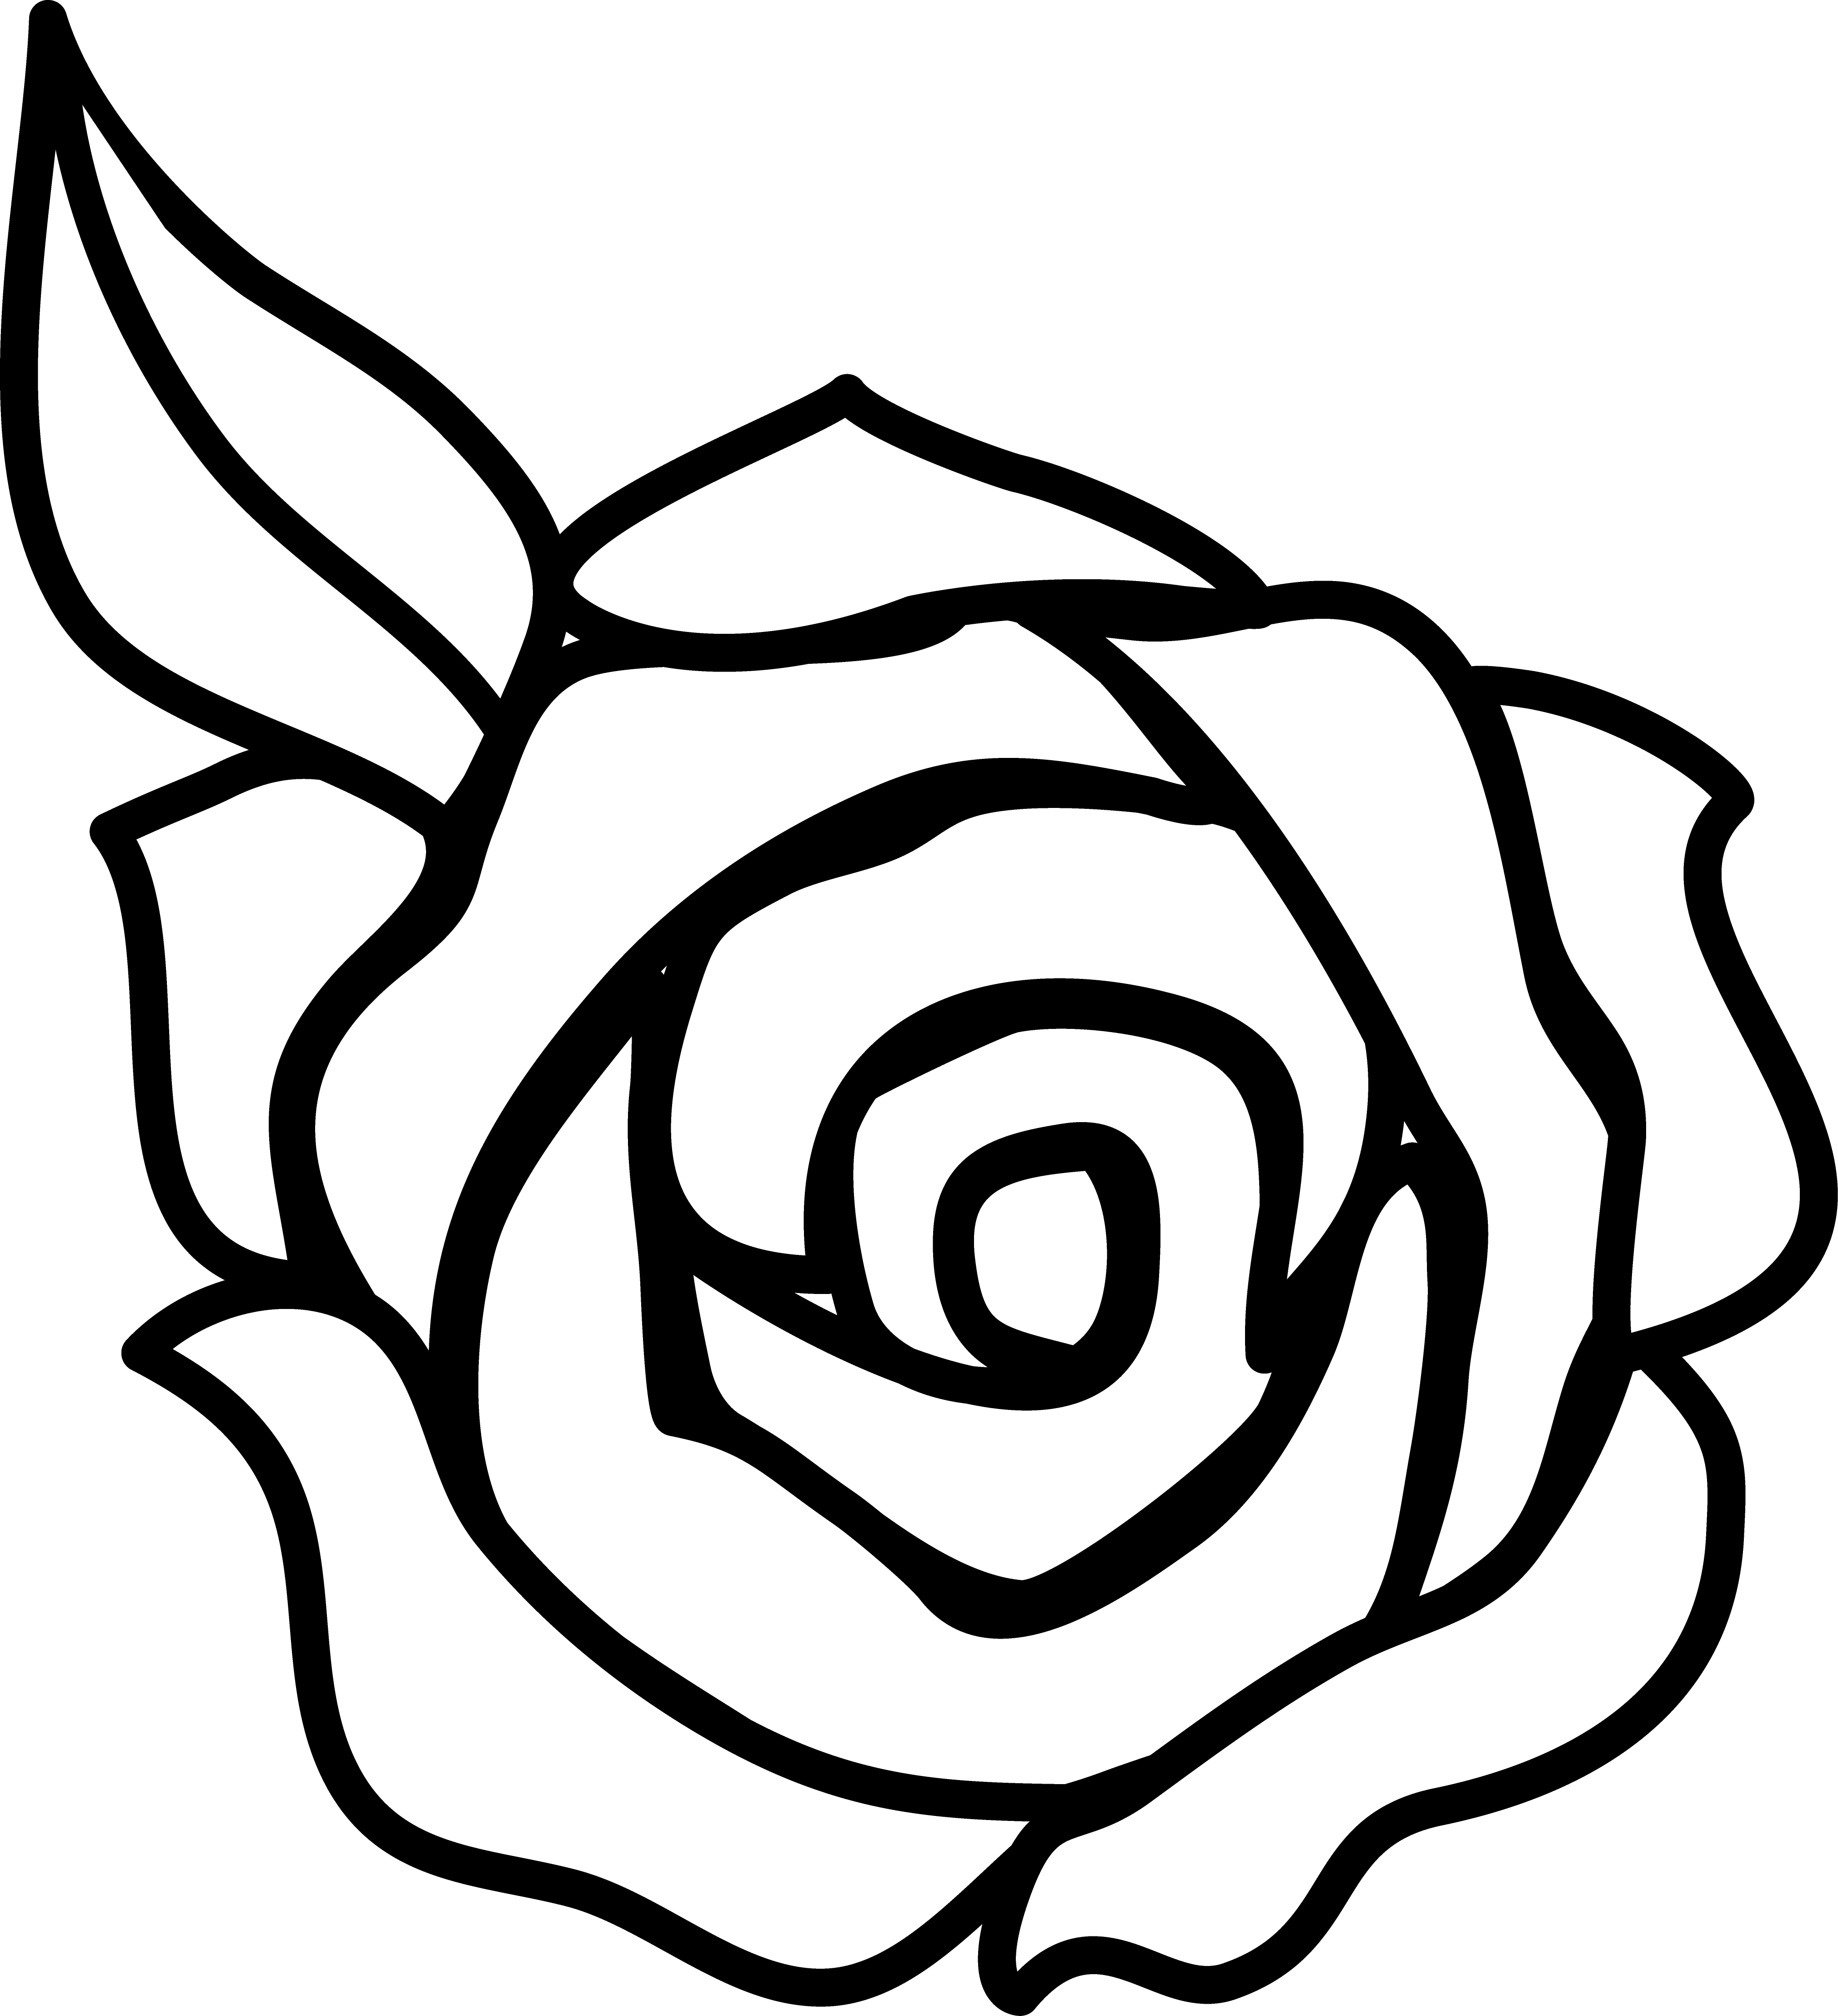 black and white rose border clip art clipart panda free clipart rh pinterest co uk